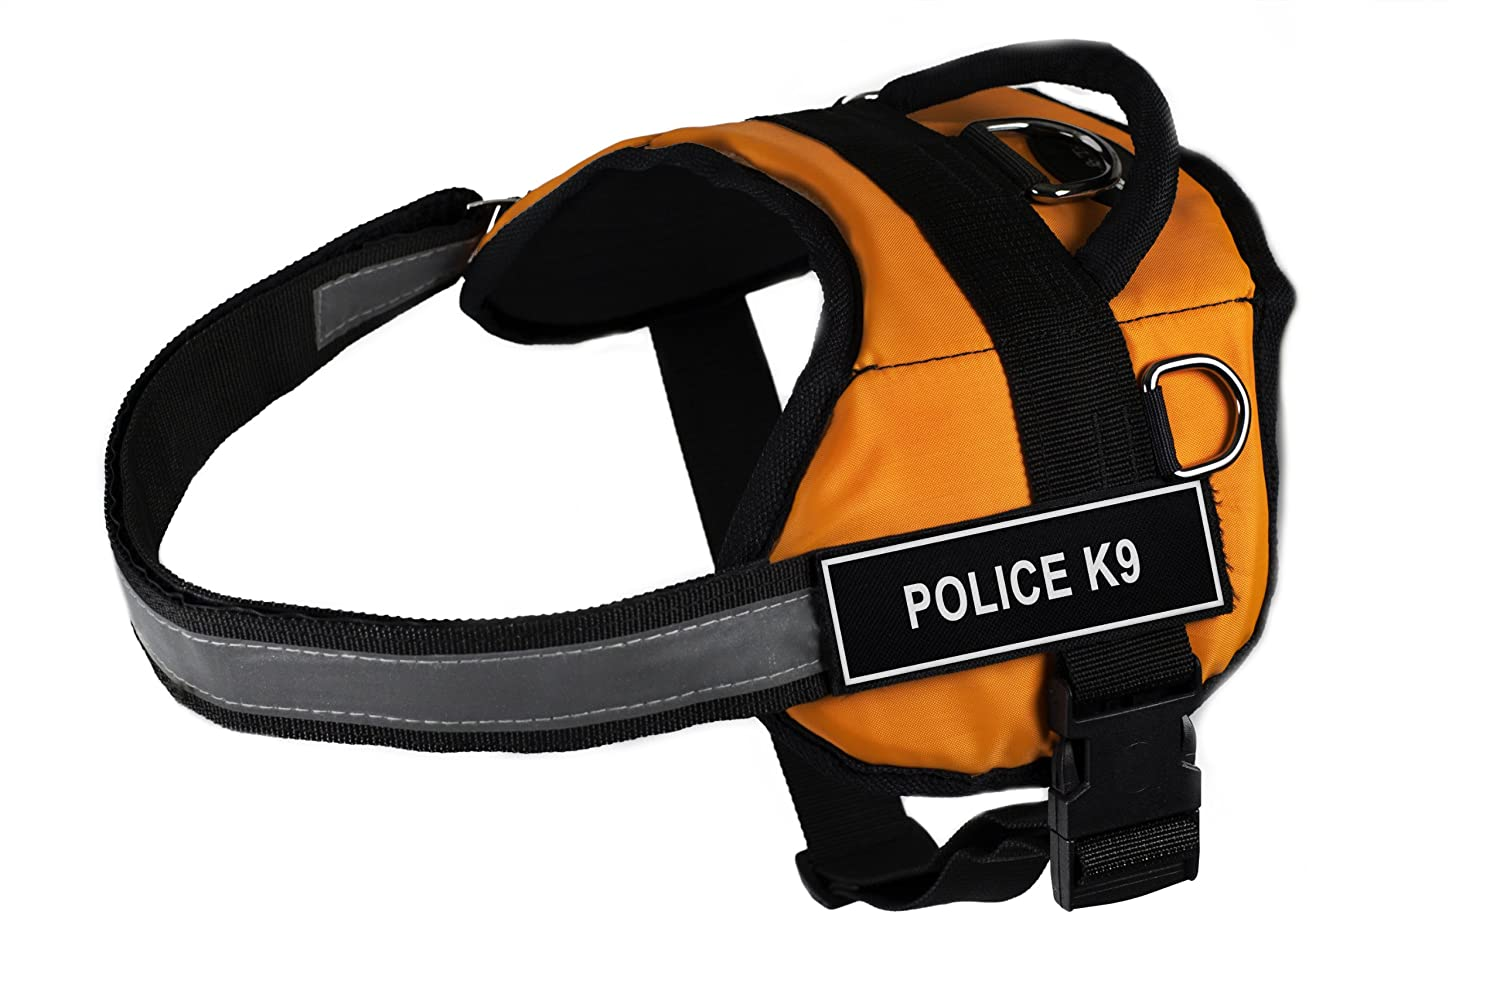 Dean & Tyler DT Works Harness Police K9 Pet Harness, Large, Fits Girth Size 34-Inch to 47-Inch, orange Black